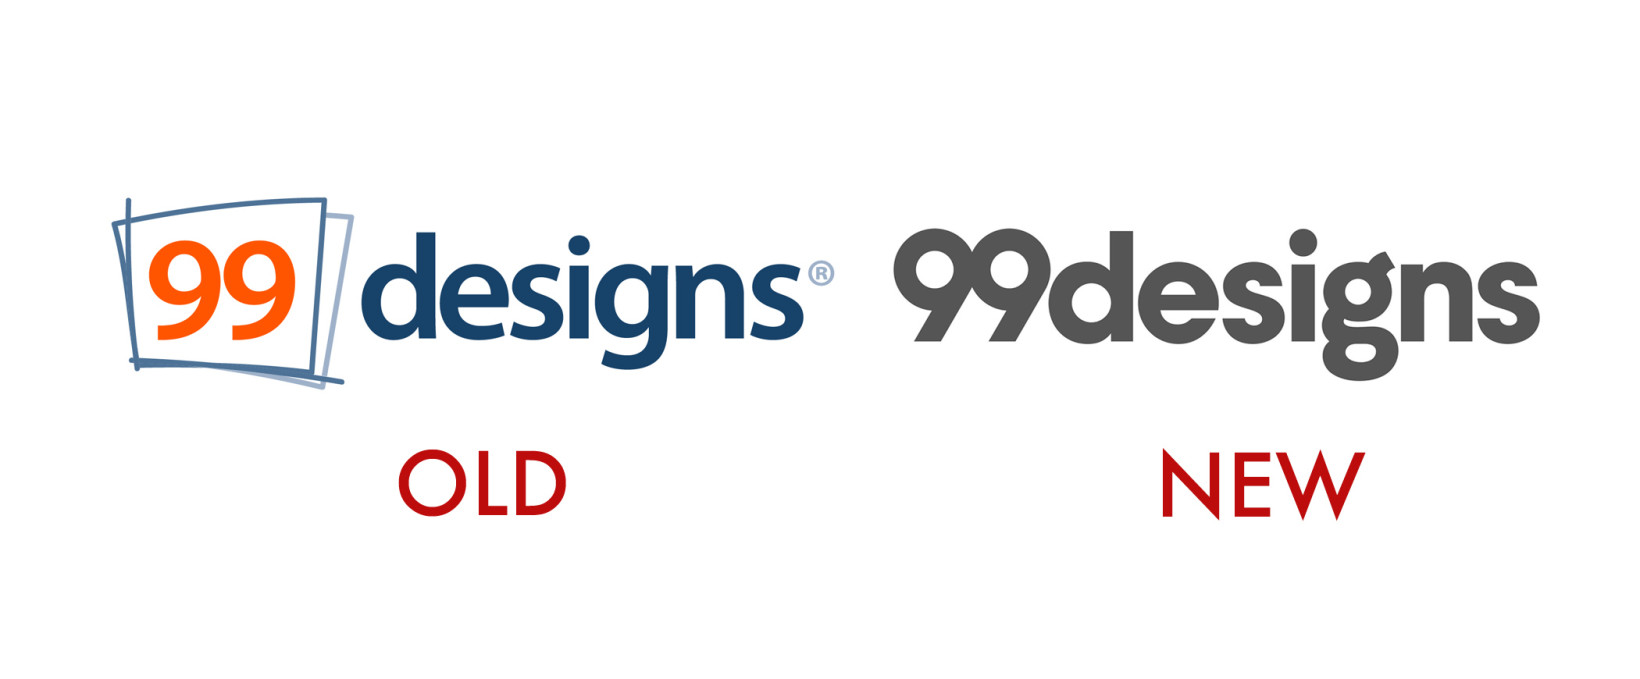 99designs has a new logo that it got in a meta for Home decor logo 99design